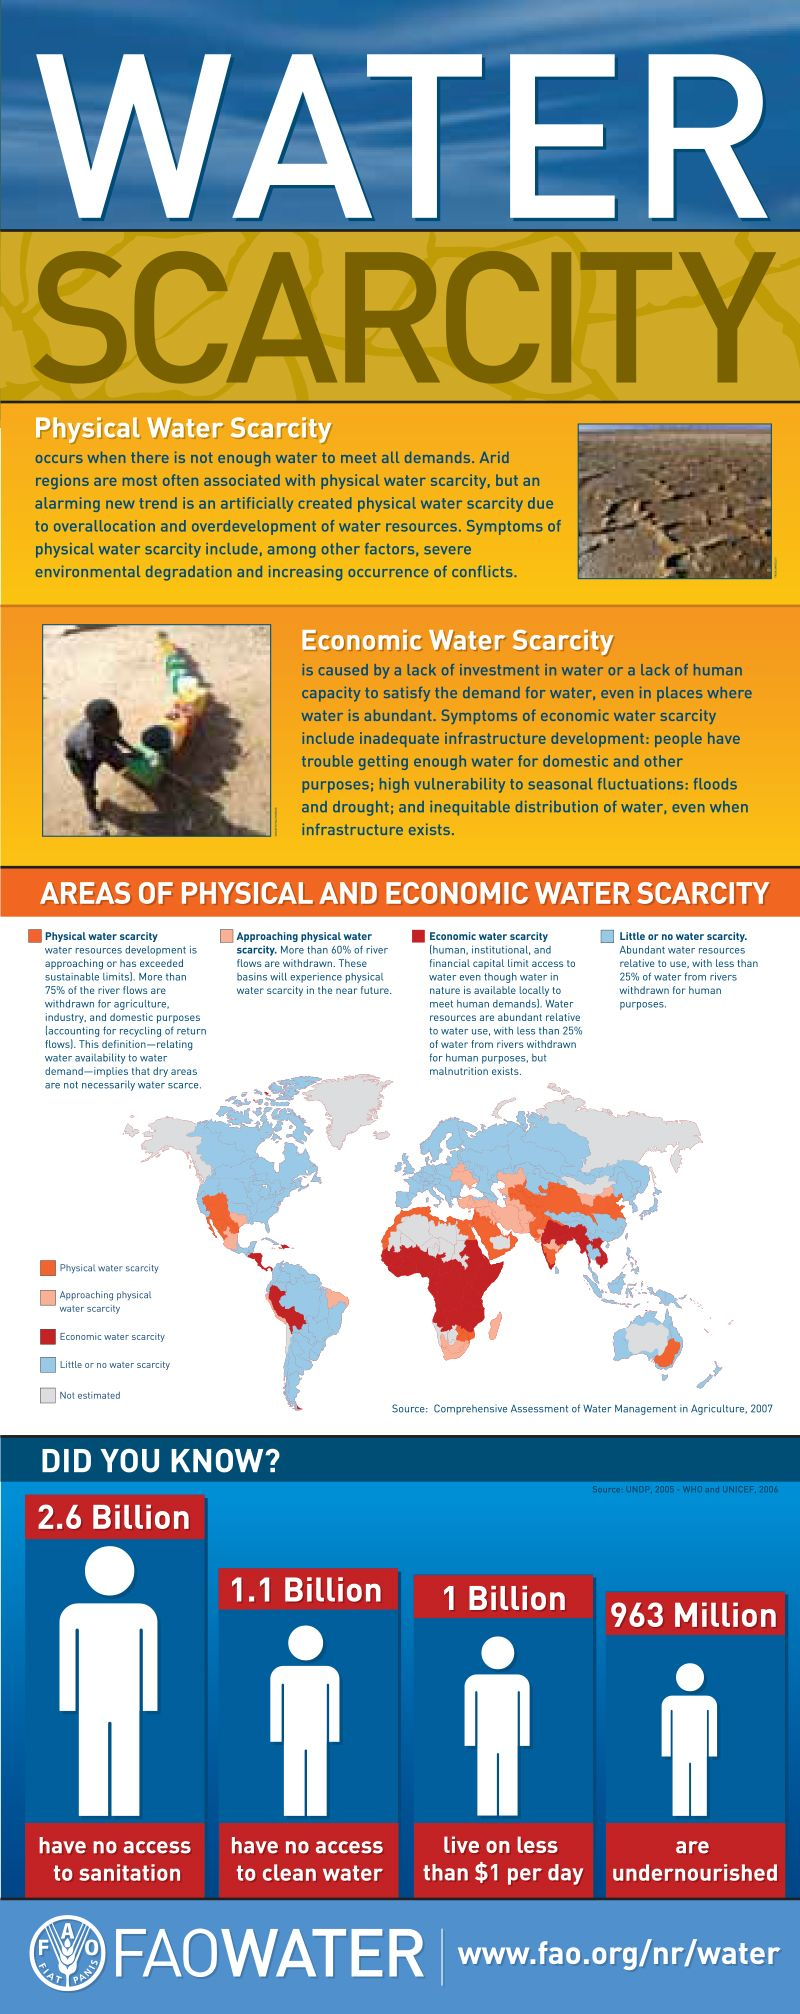 water scarcity essay Page 2 water scarcity essay around 700 million people in 43 countries suffer today from water scarcity by 2025, 1 8 billion people will be living in countries or regions with absolute water scarcity, and two-thirds of the world's population could be living under water stressed conditions.